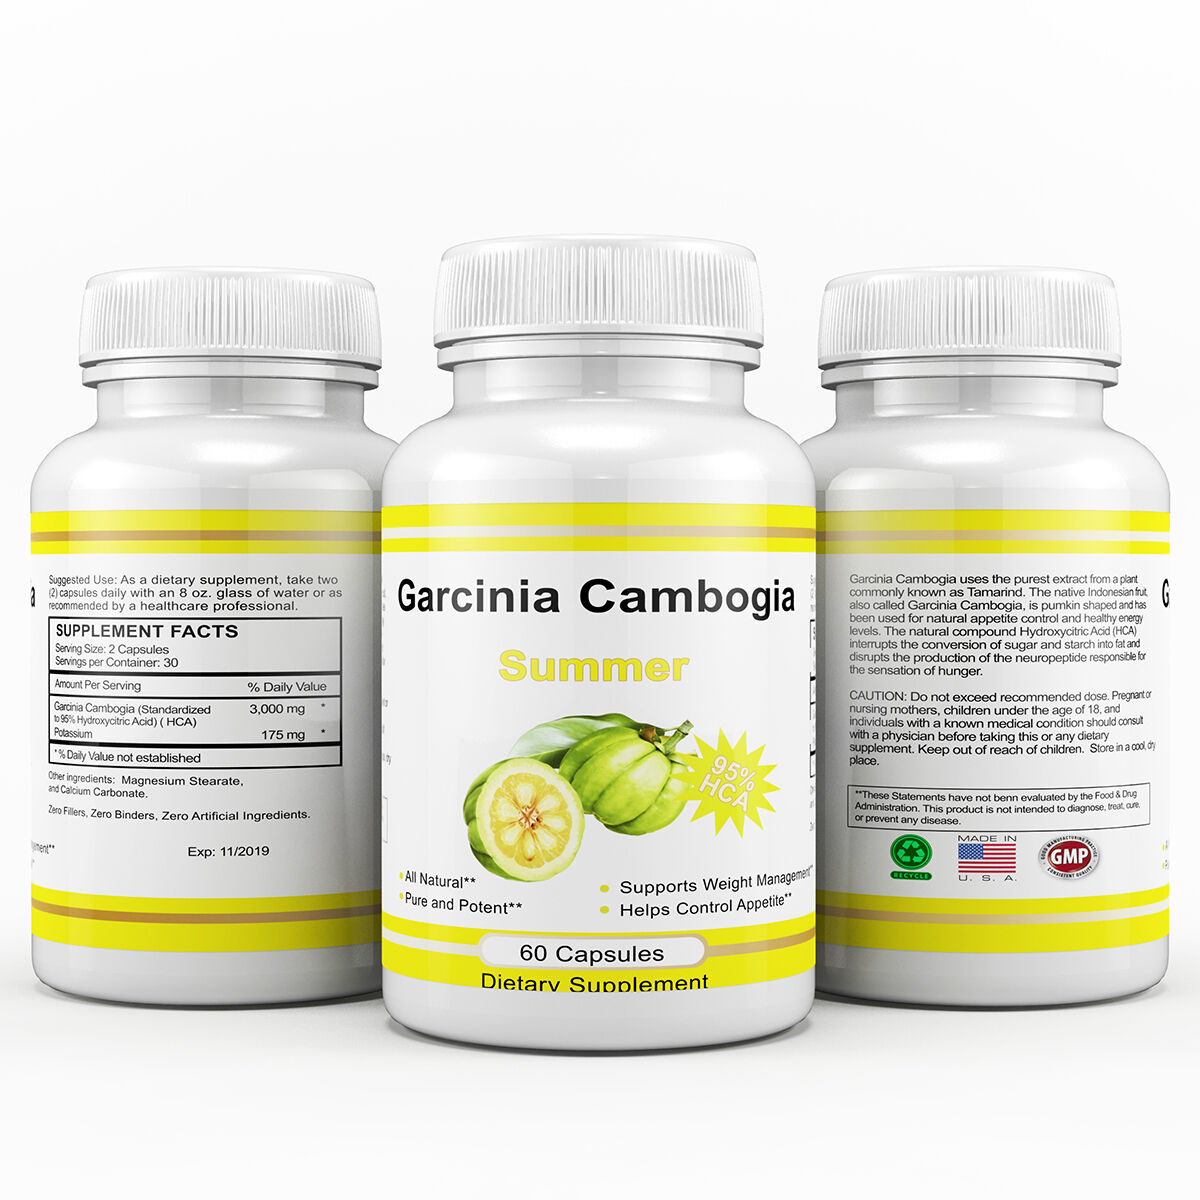 How many mg of garcinia cambogia for weight loss